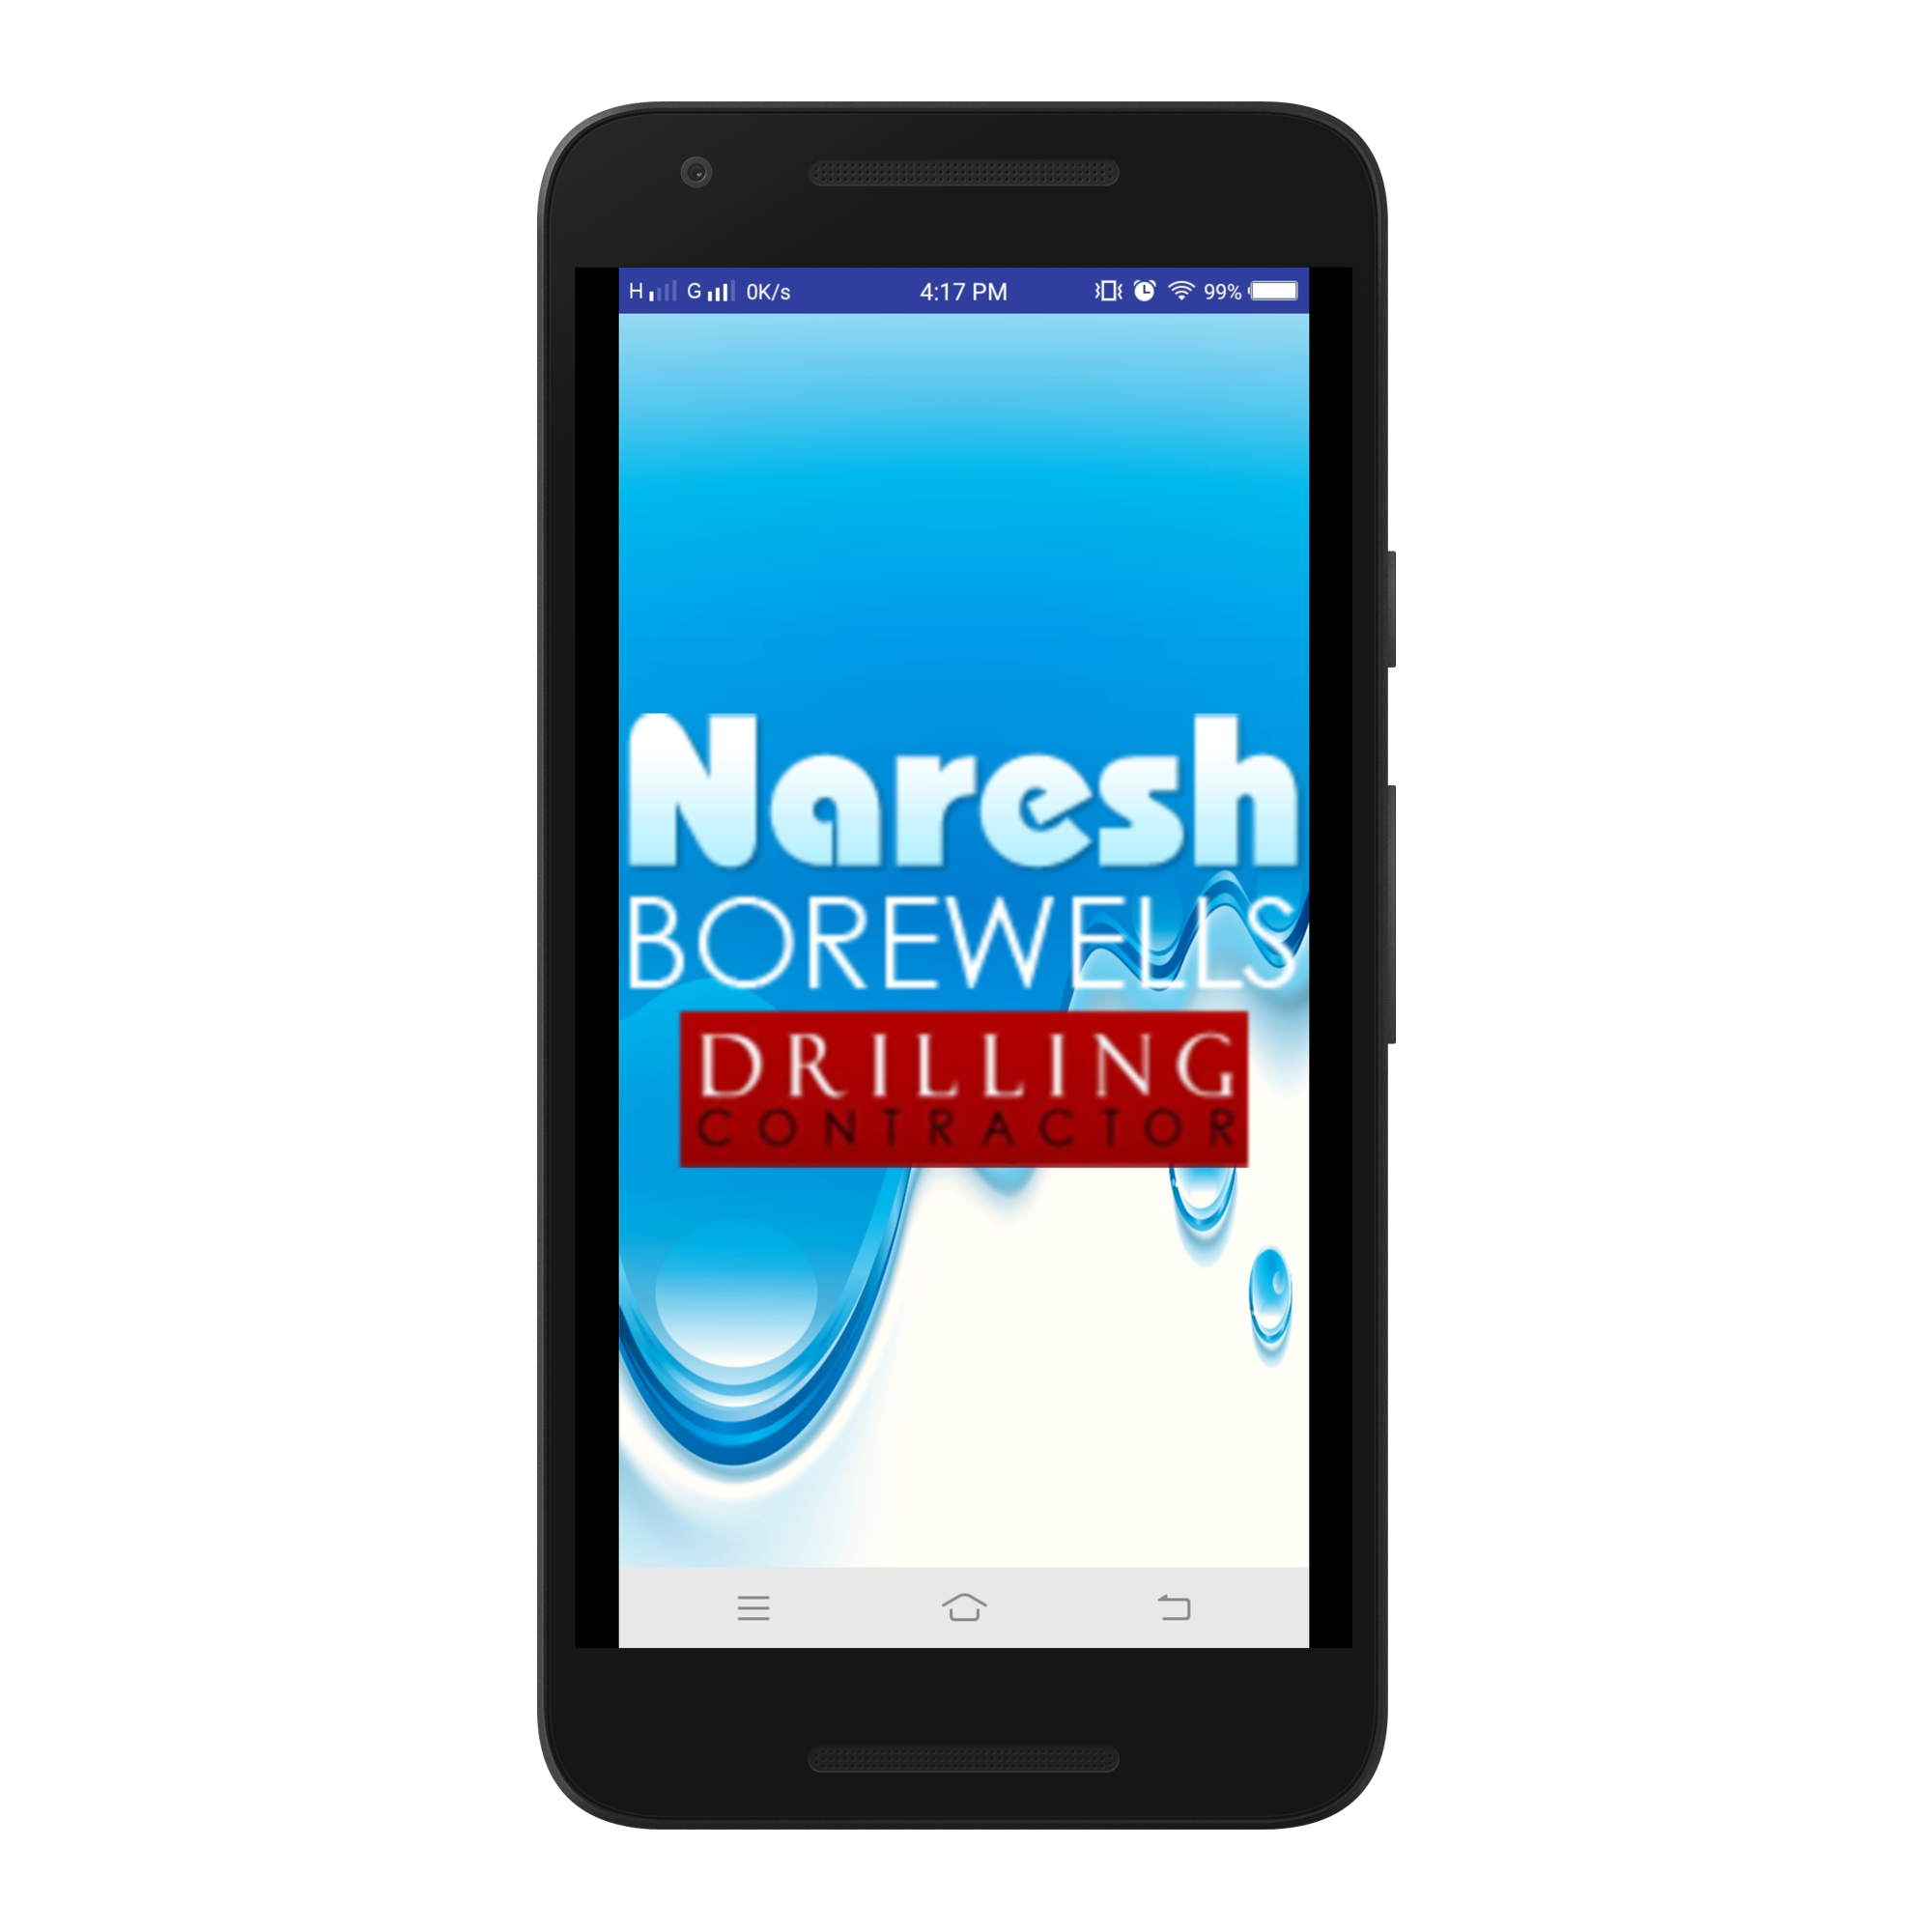 Naresh Borewell App Check on Playstore